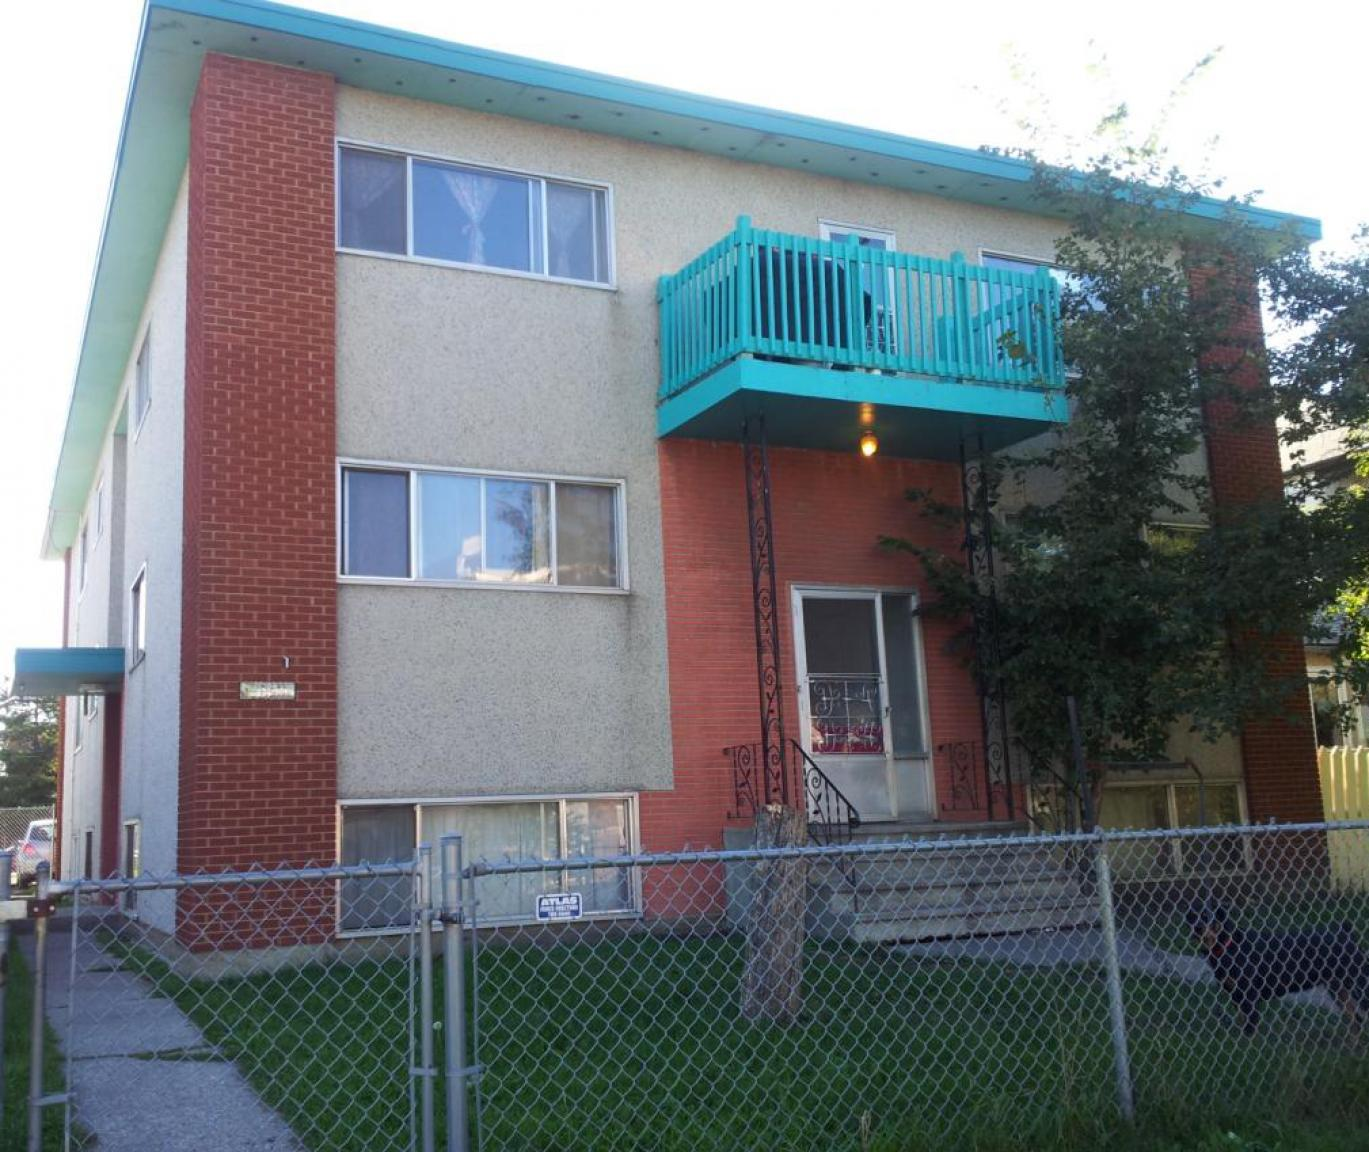 Edmonton Apartments And Houses For Rent Near Edmonton, AB